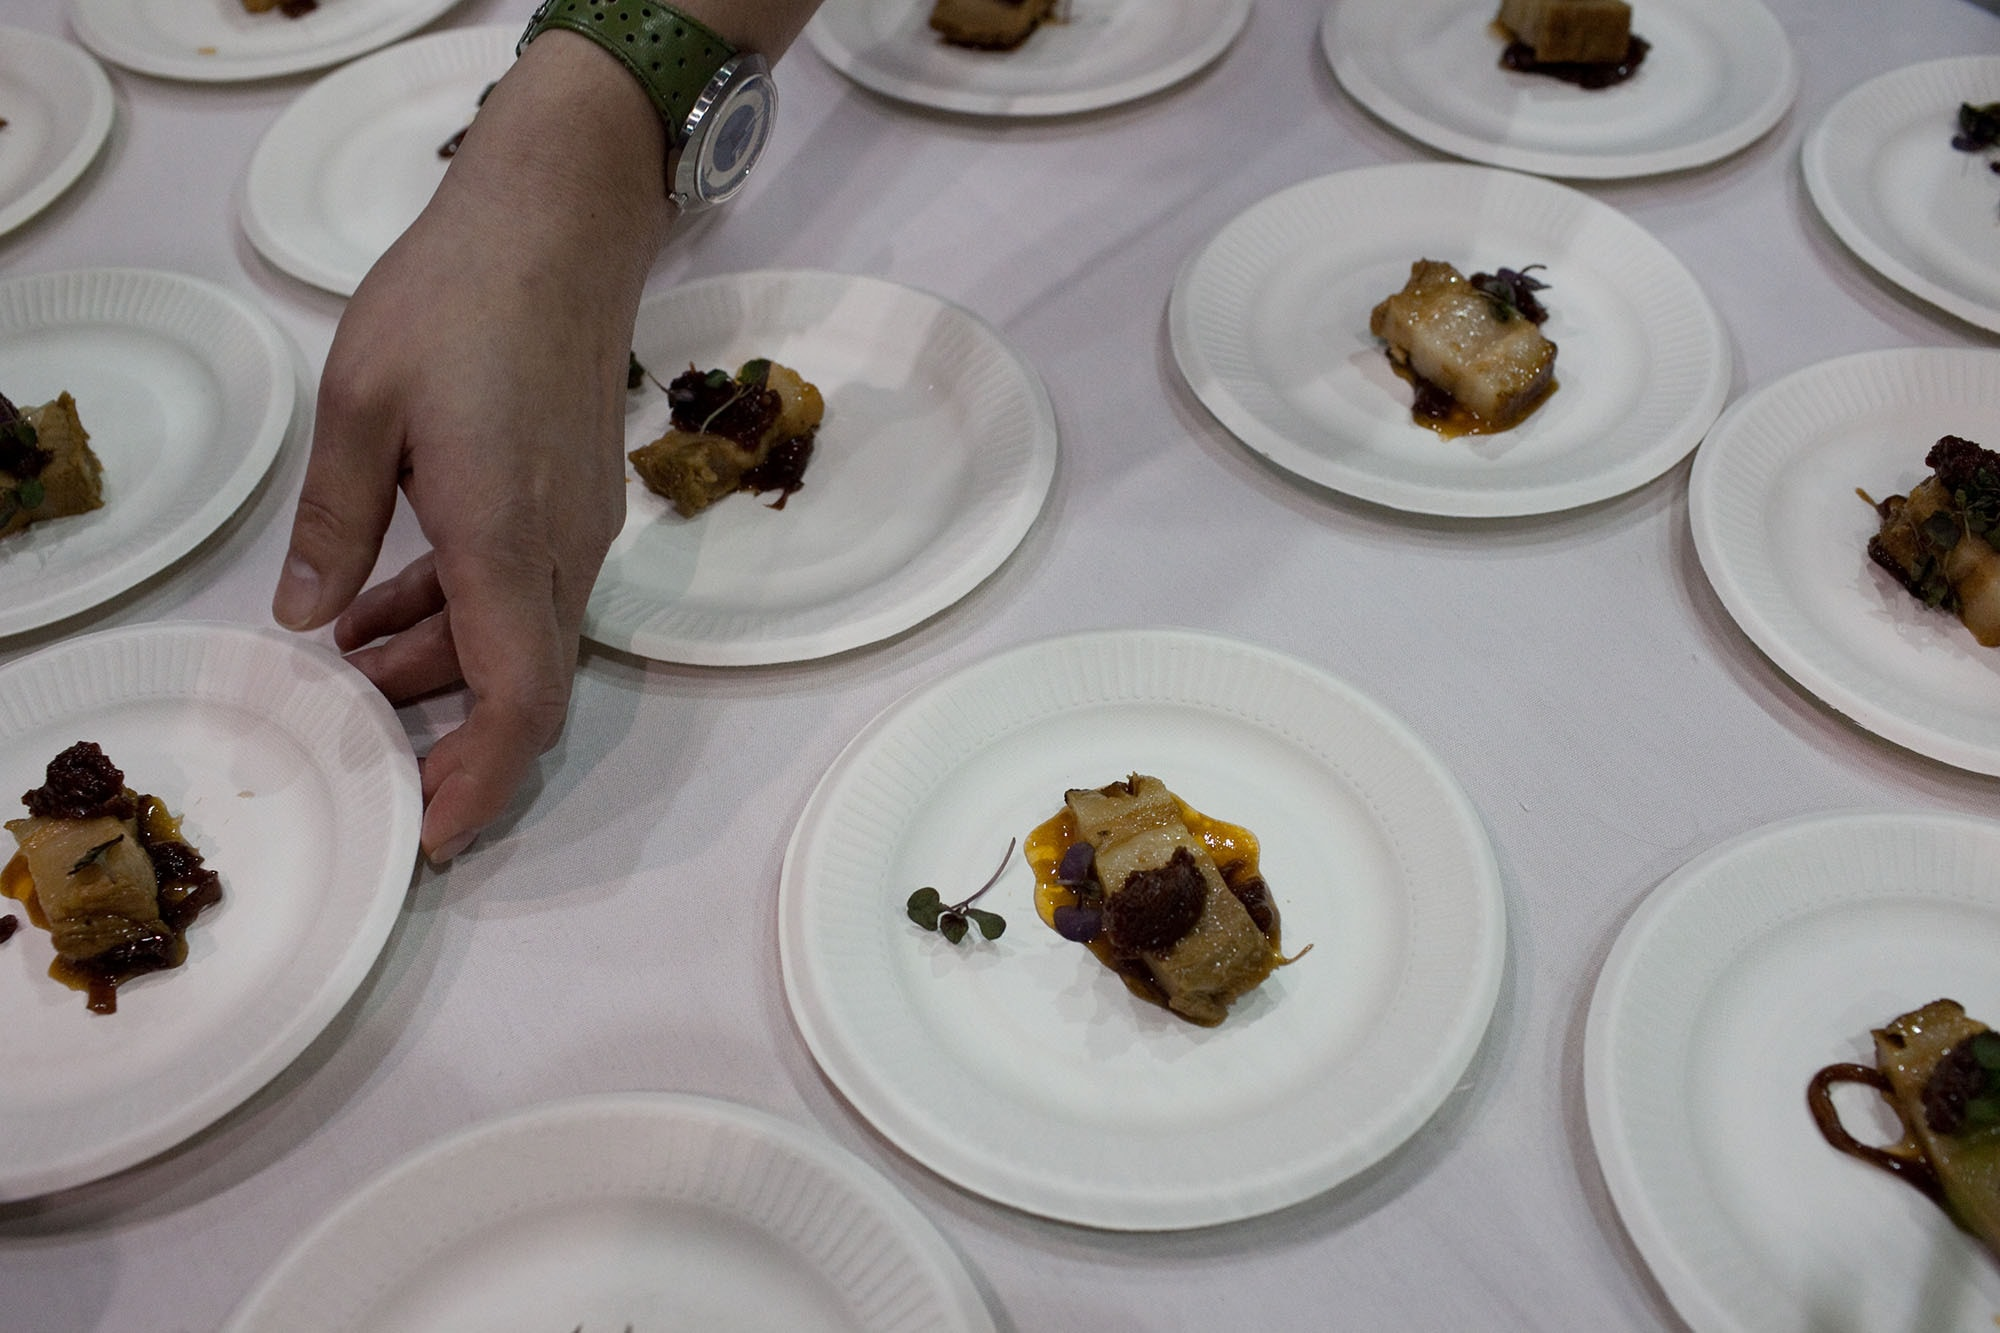 Bacon Manhattan: Templeton Rye Braised Pork Belly, Vermouth & Onion Marmalade with Tart Cherry from Custom House Tavern at Baconfest Chicago